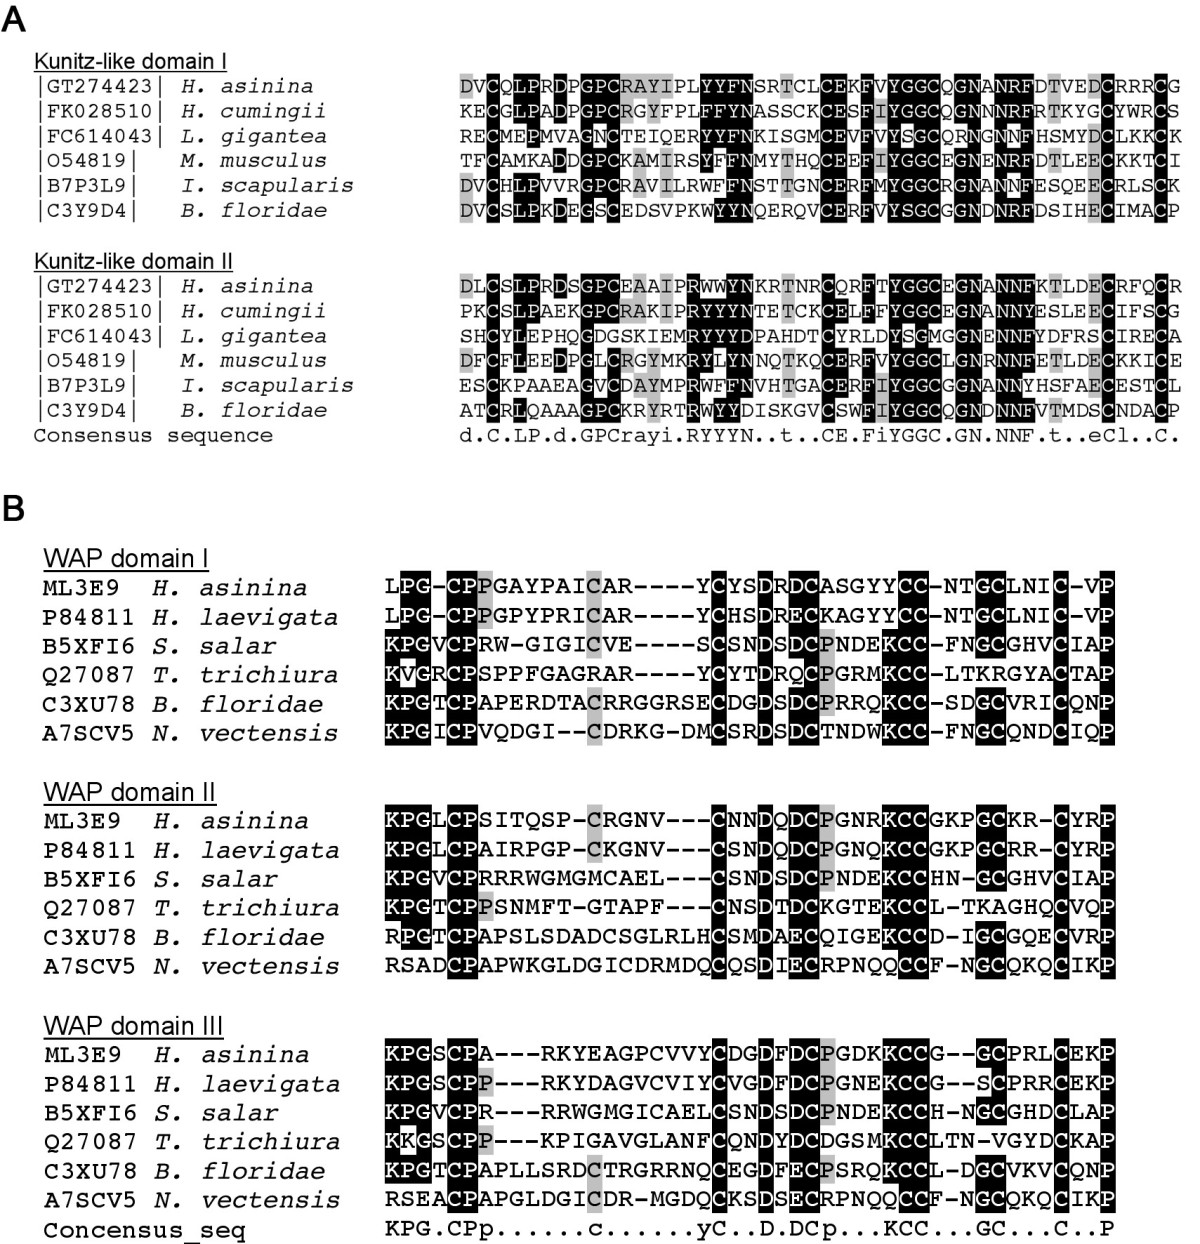 https://static-content.springer.com/image/art%3A10.1186%2F1477-5956-8-54/MediaObjects/12953_2010_Article_206_Fig5_HTML.jpg